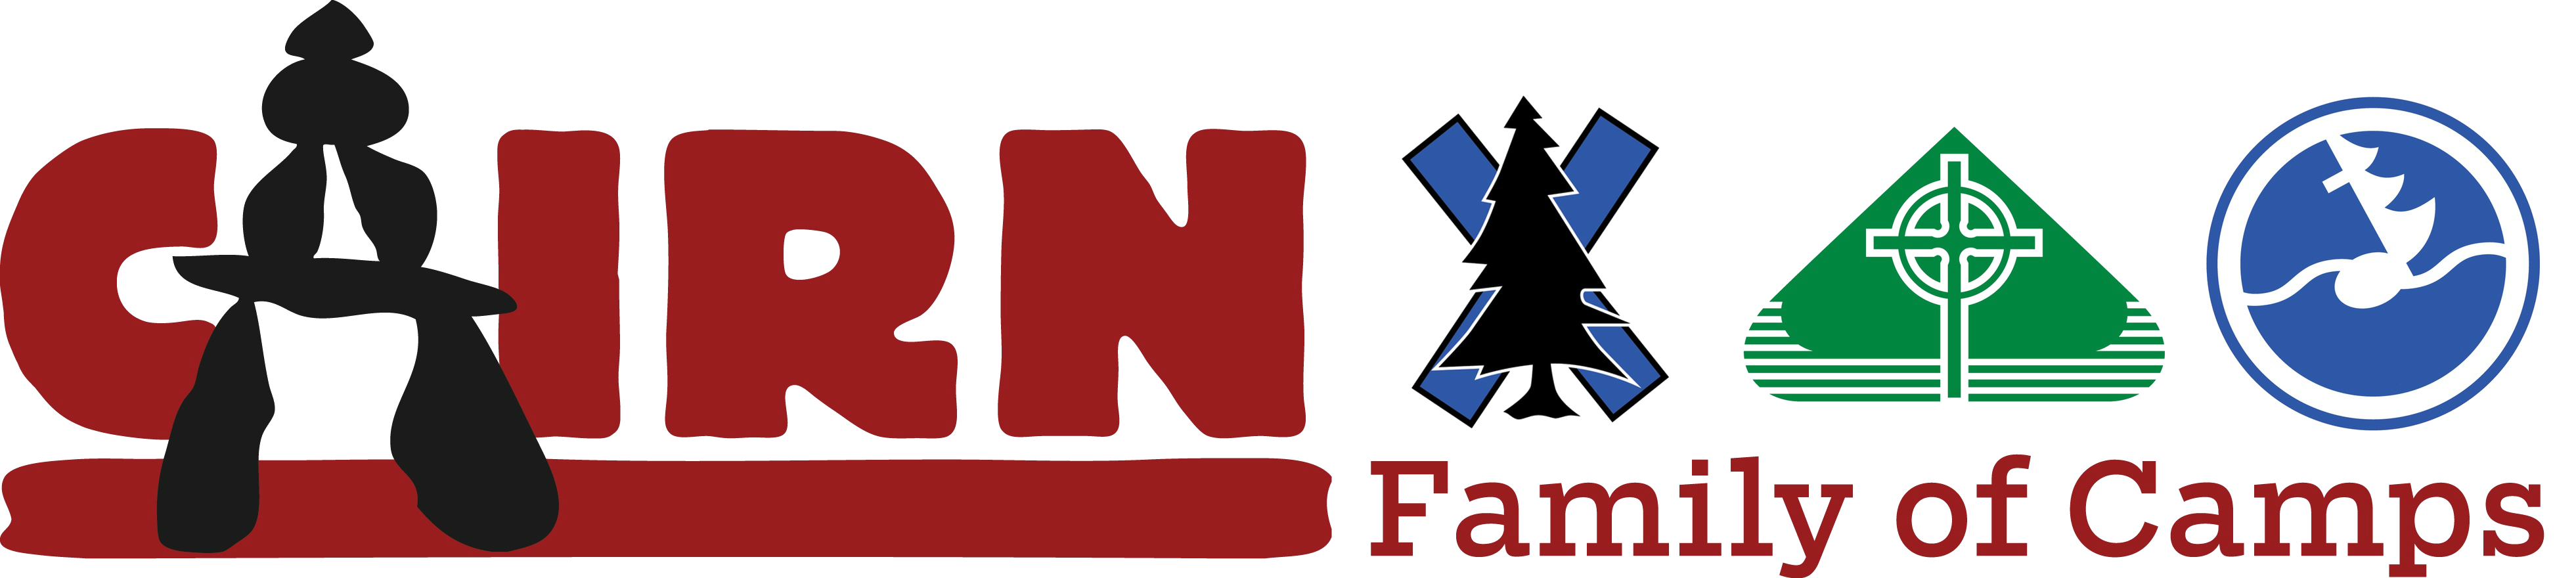 Cairn Family of Camps logo